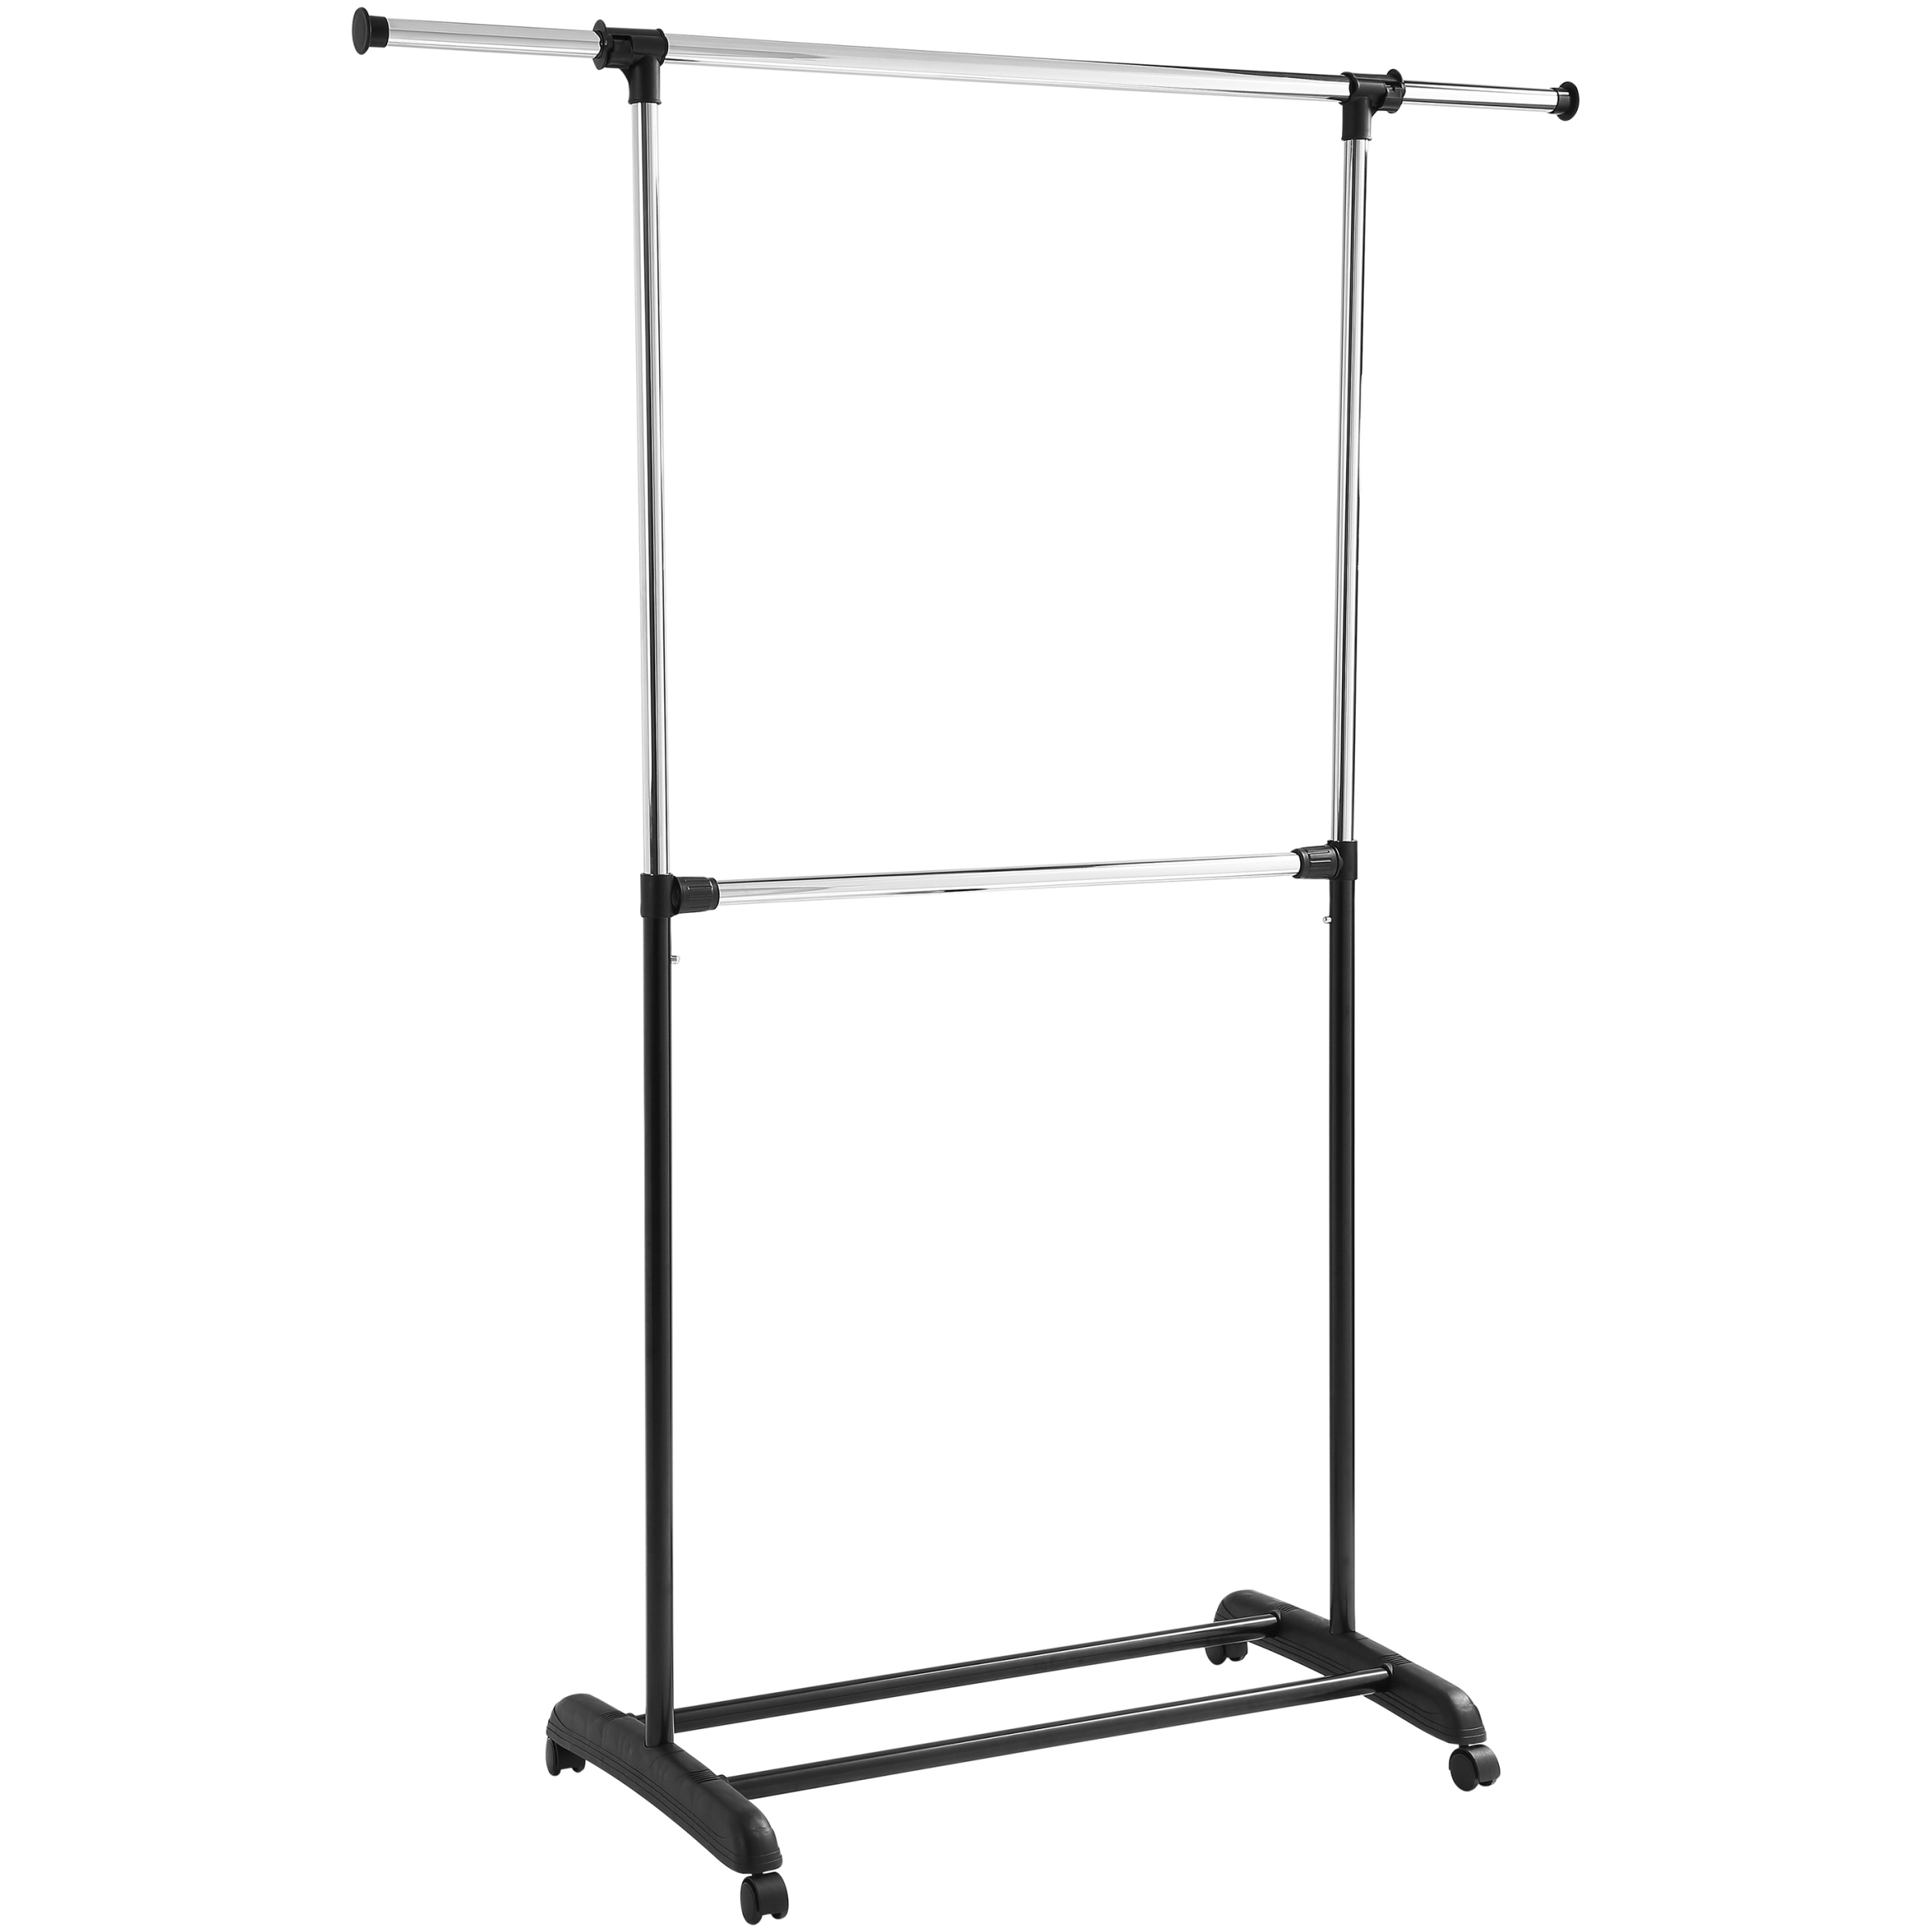 Mainstays™ Adjustable 2 Tier Rolling Garment Rack, Adjustable Design